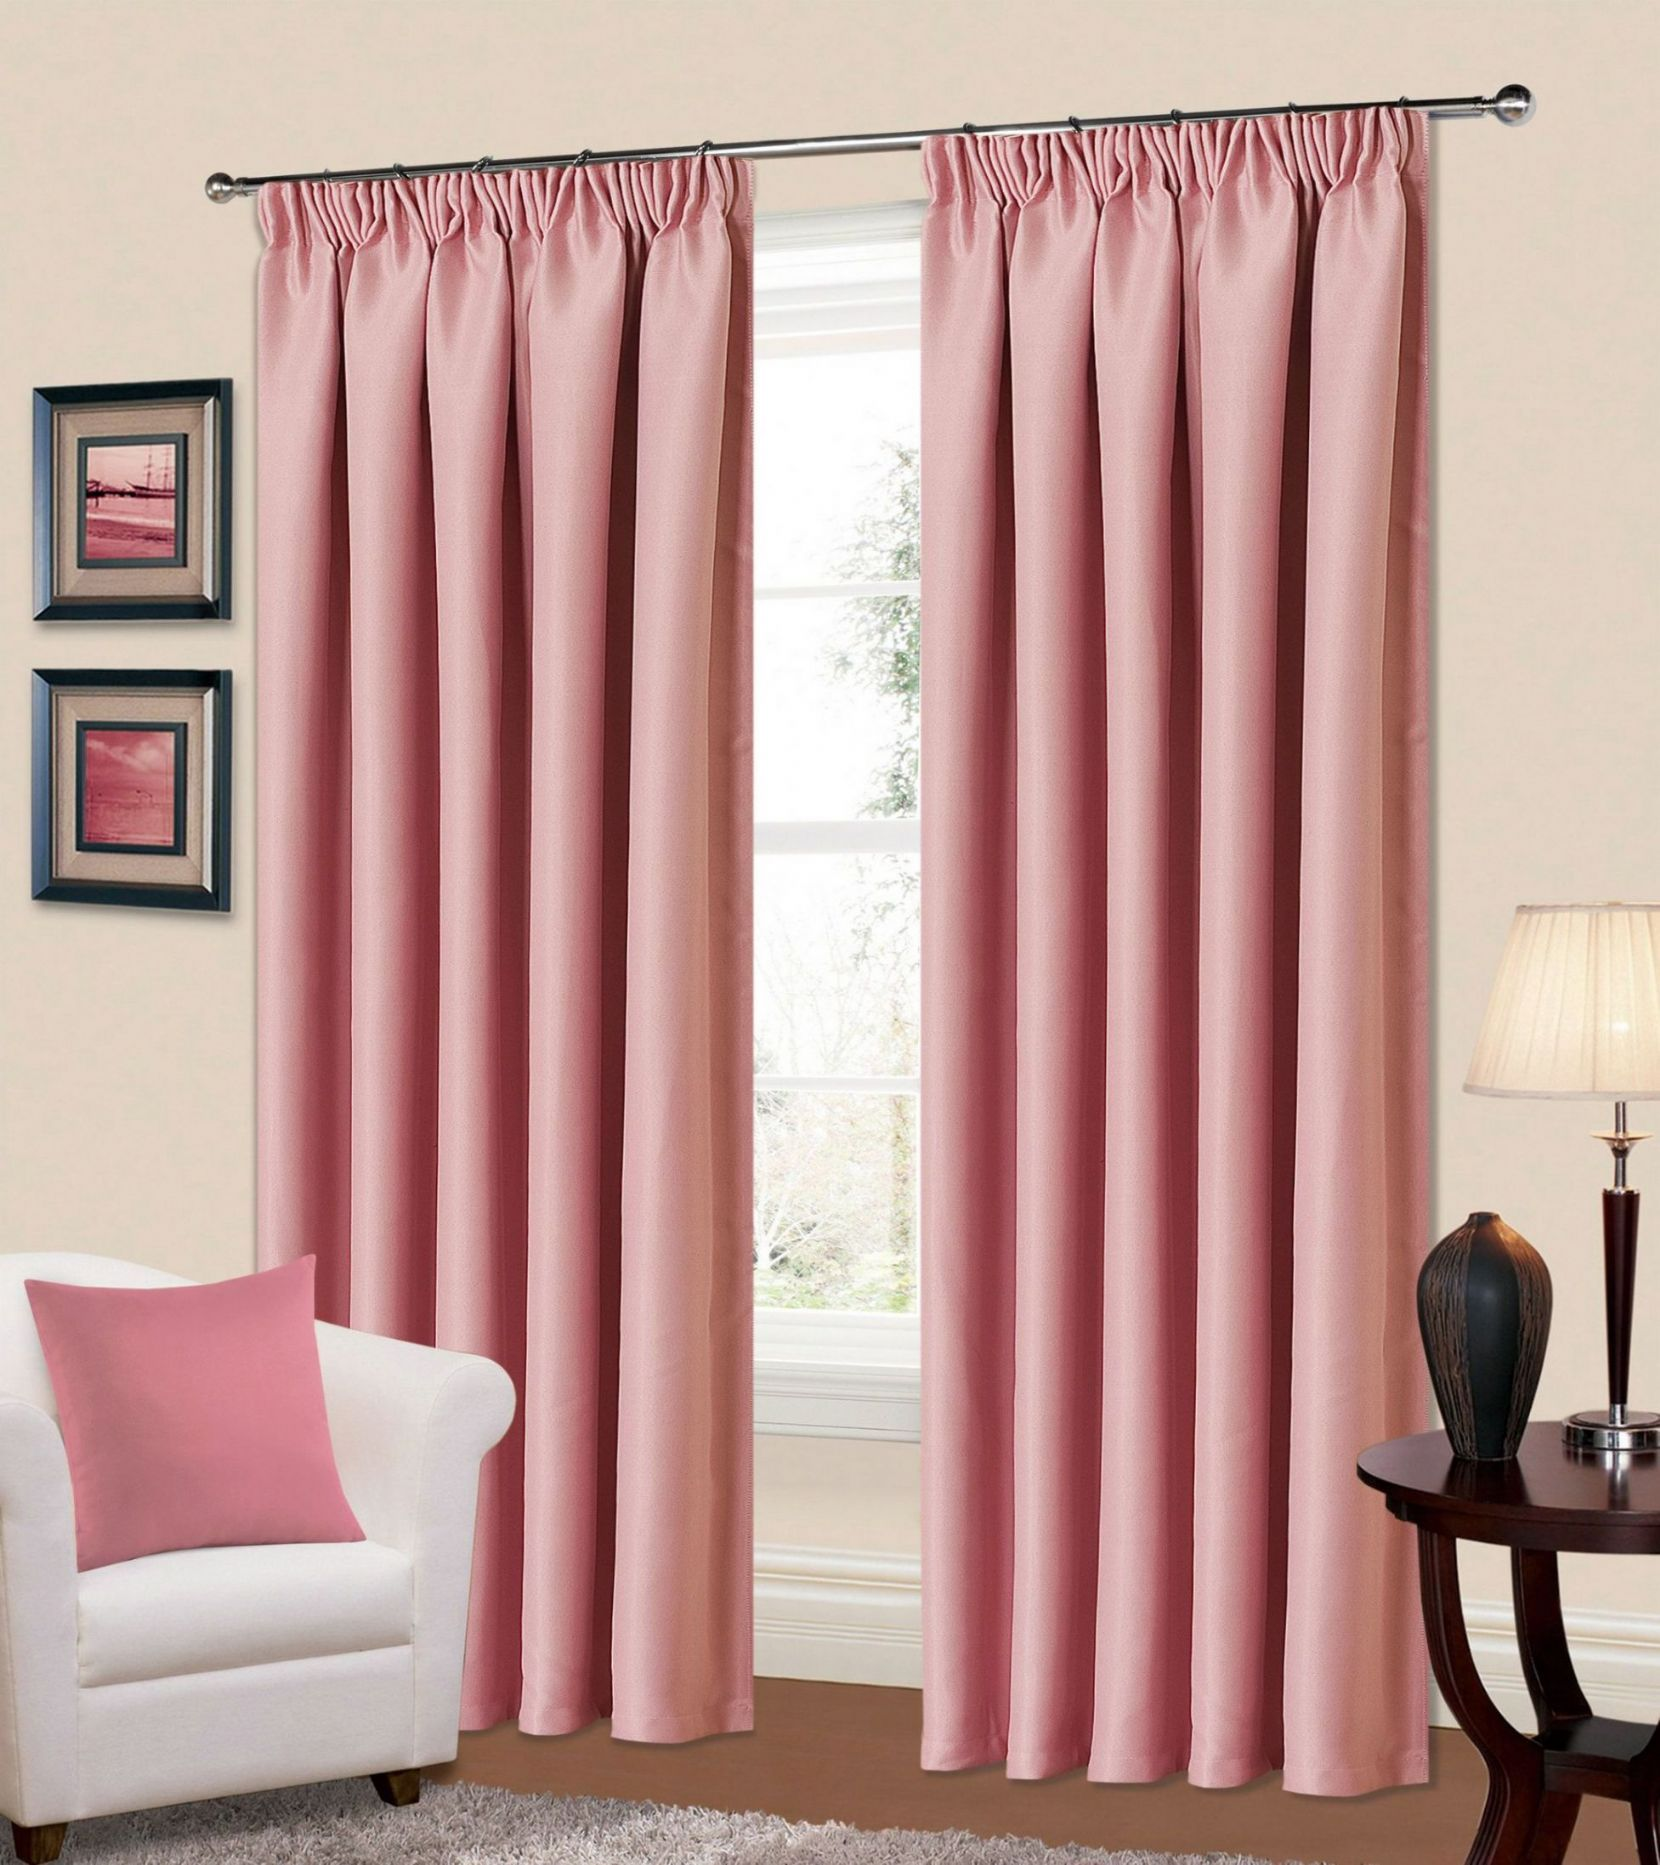 Bedroom Curtains Pencil Pleat - Dicker Vorhang Für Tür